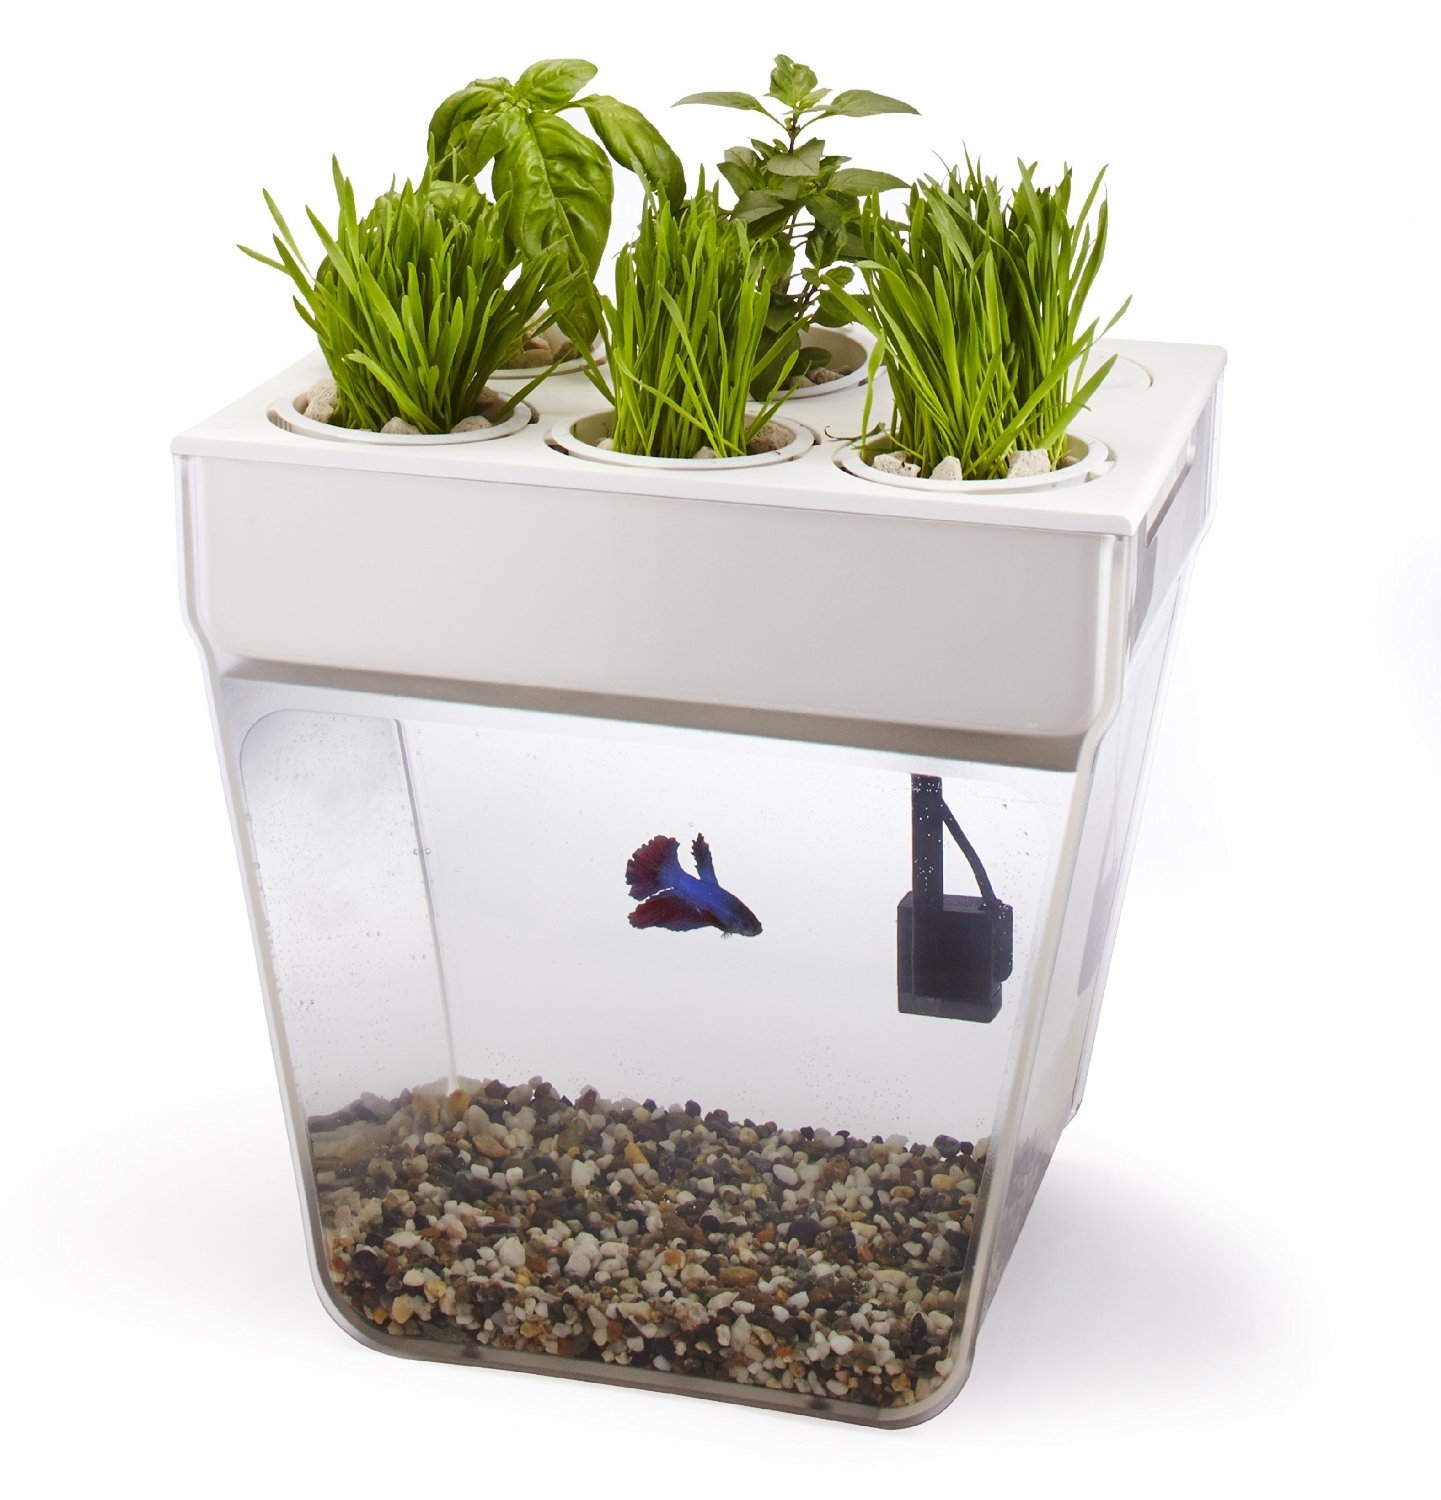 Aquarium fish tank starter kit - Aquaponics Starter Kit